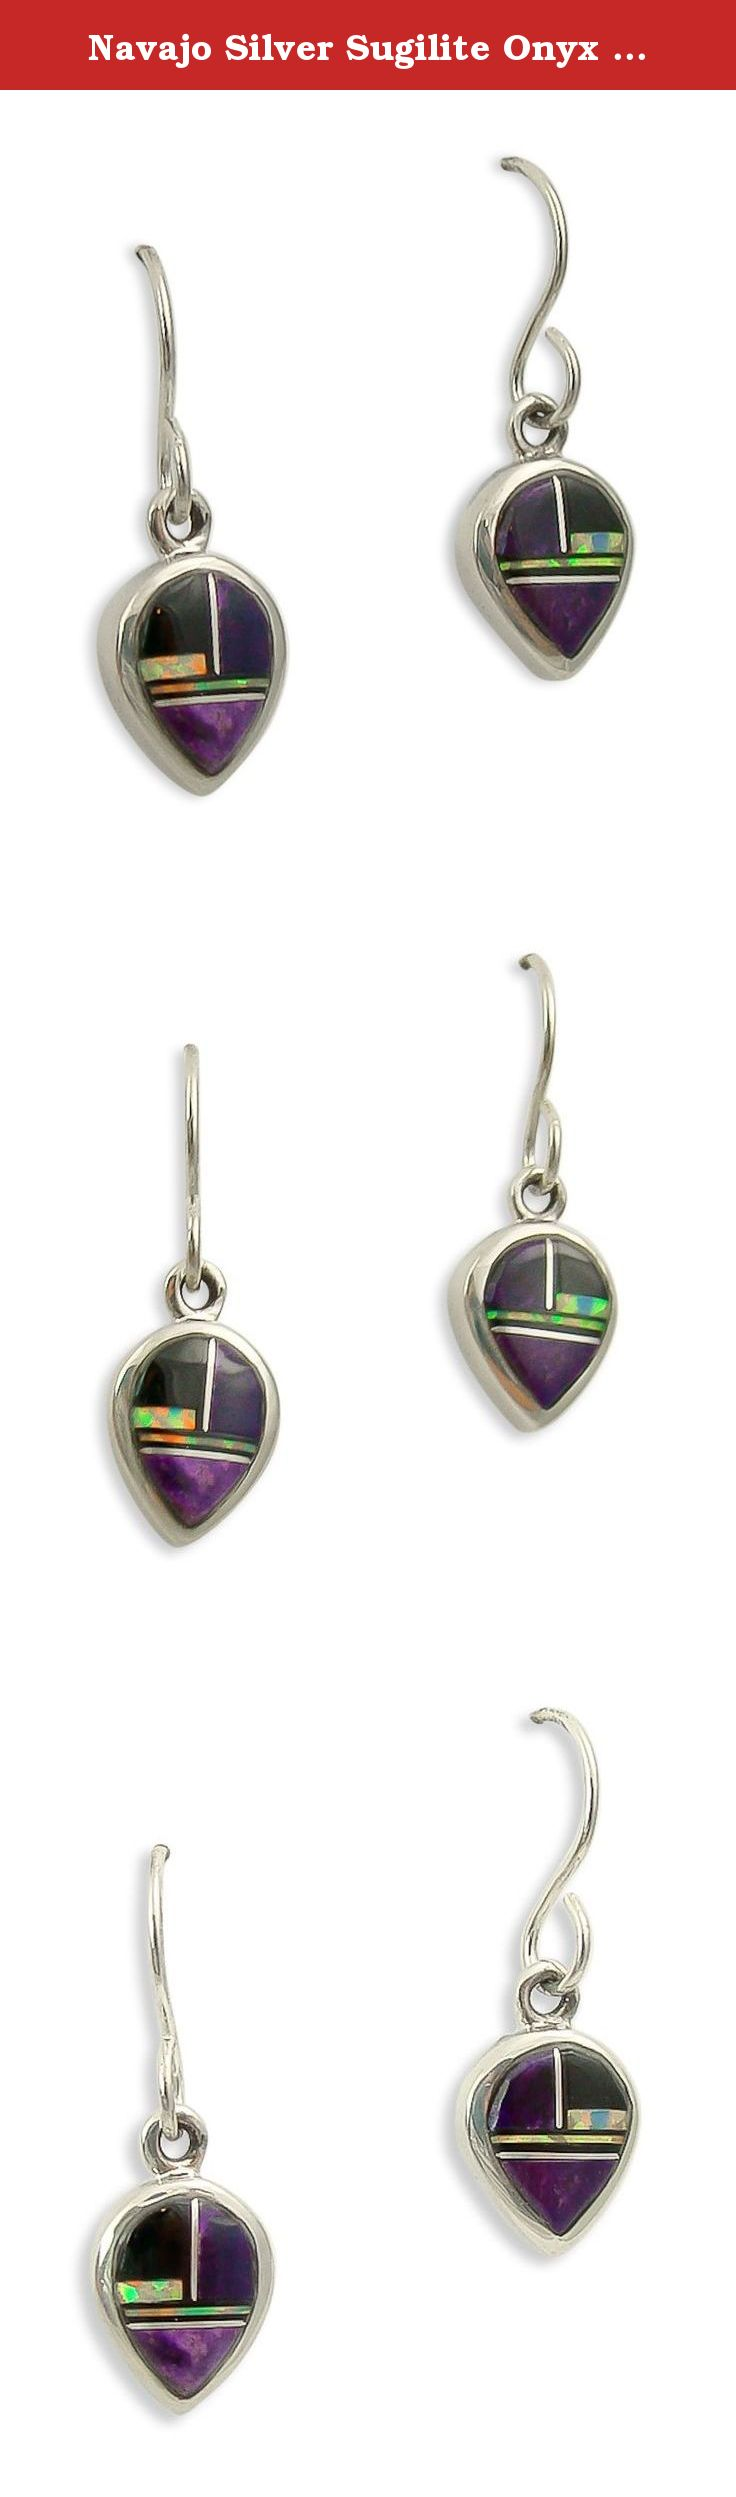 Navajo silver sugilite onyx lab opal dangle earrings these dainty